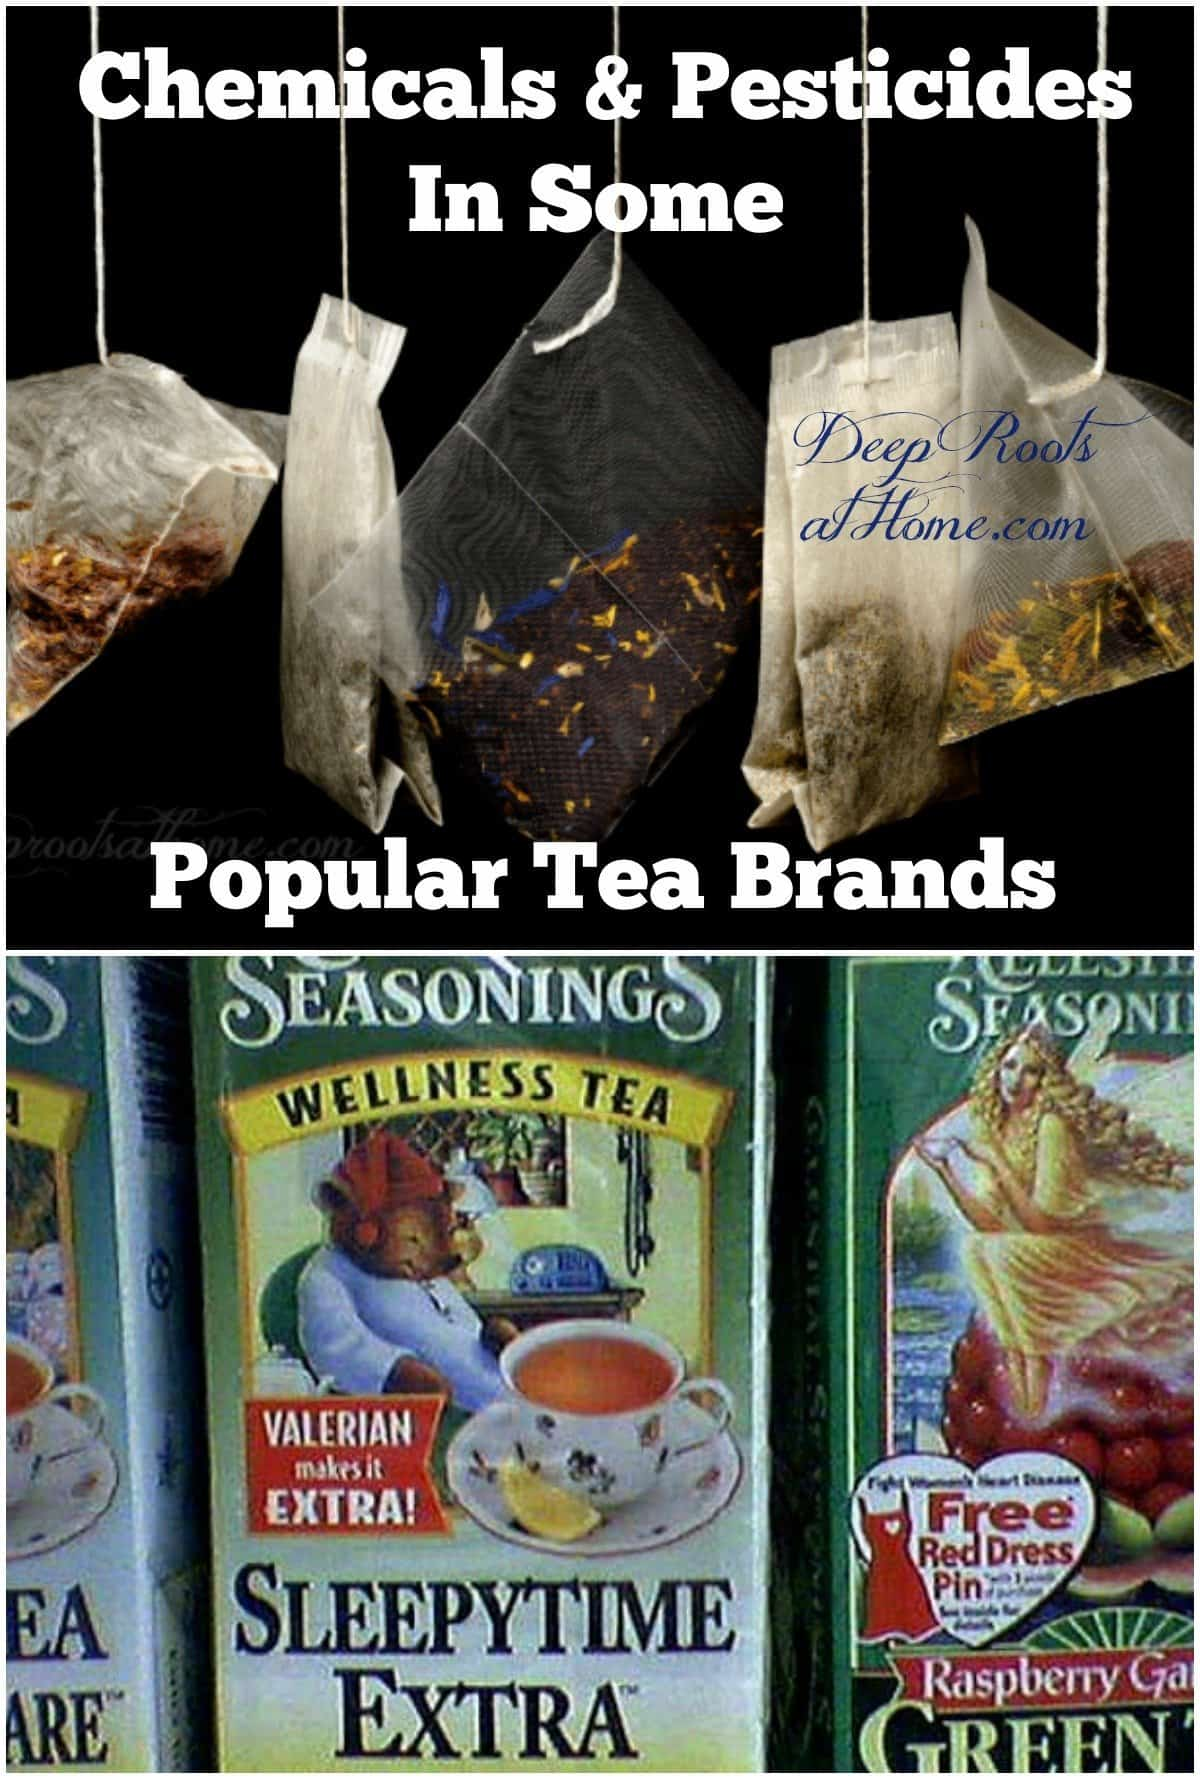 The Lowdown On Chemicals & Pesticides In Some Popular Tea Brands